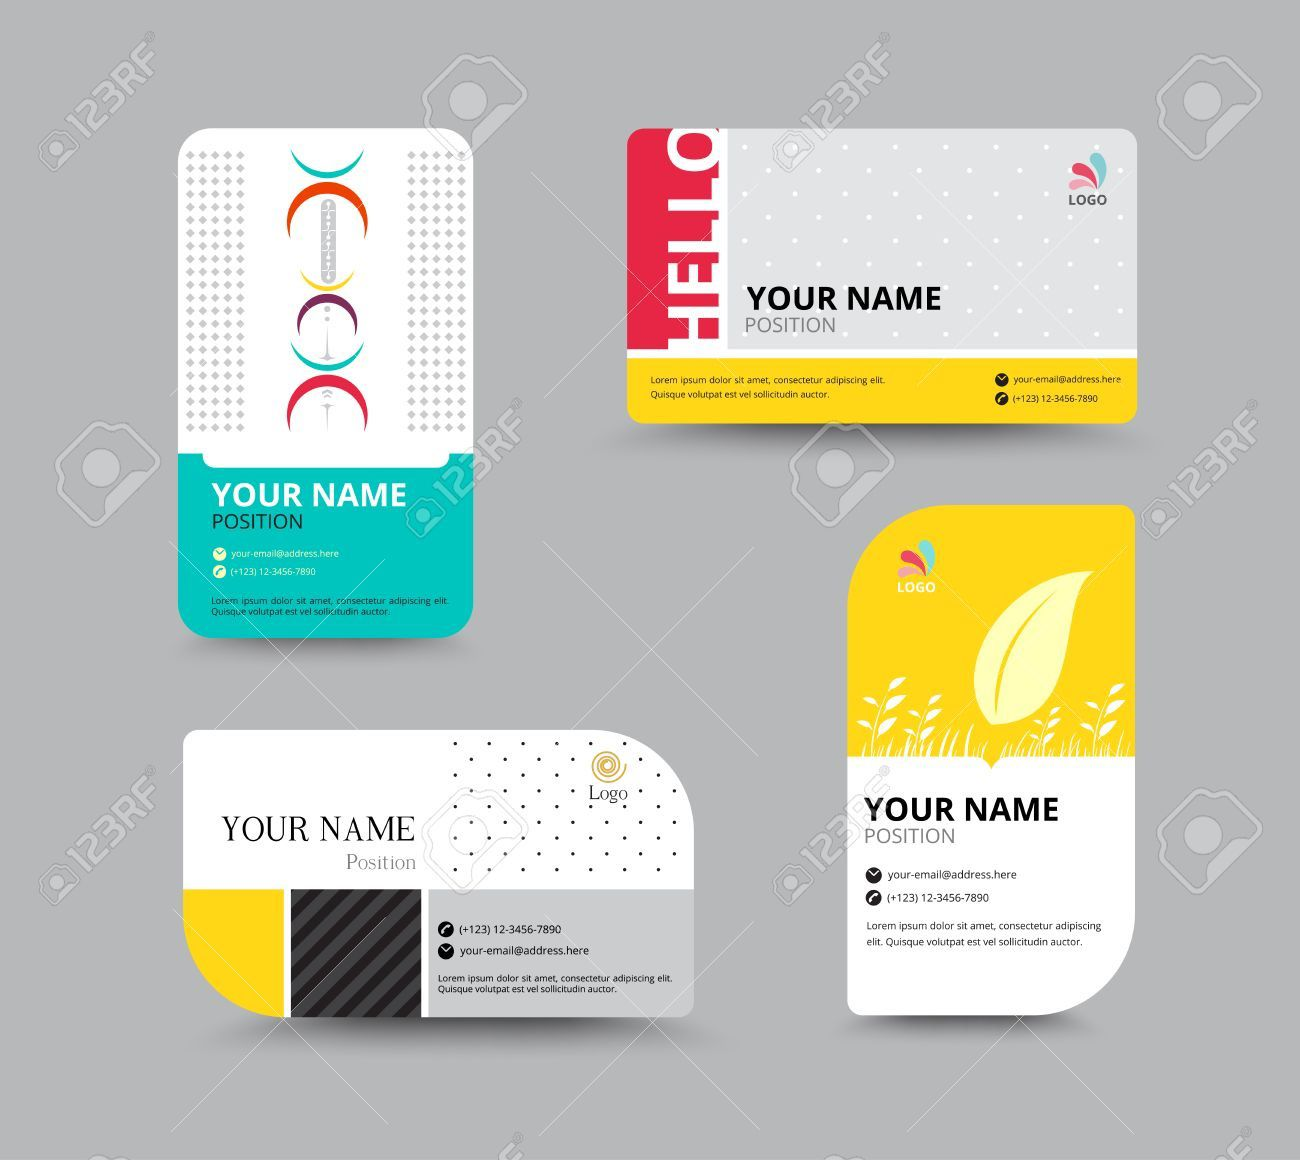 004 Magnificent Name Tag Design Template Example  Free Download PsdFull